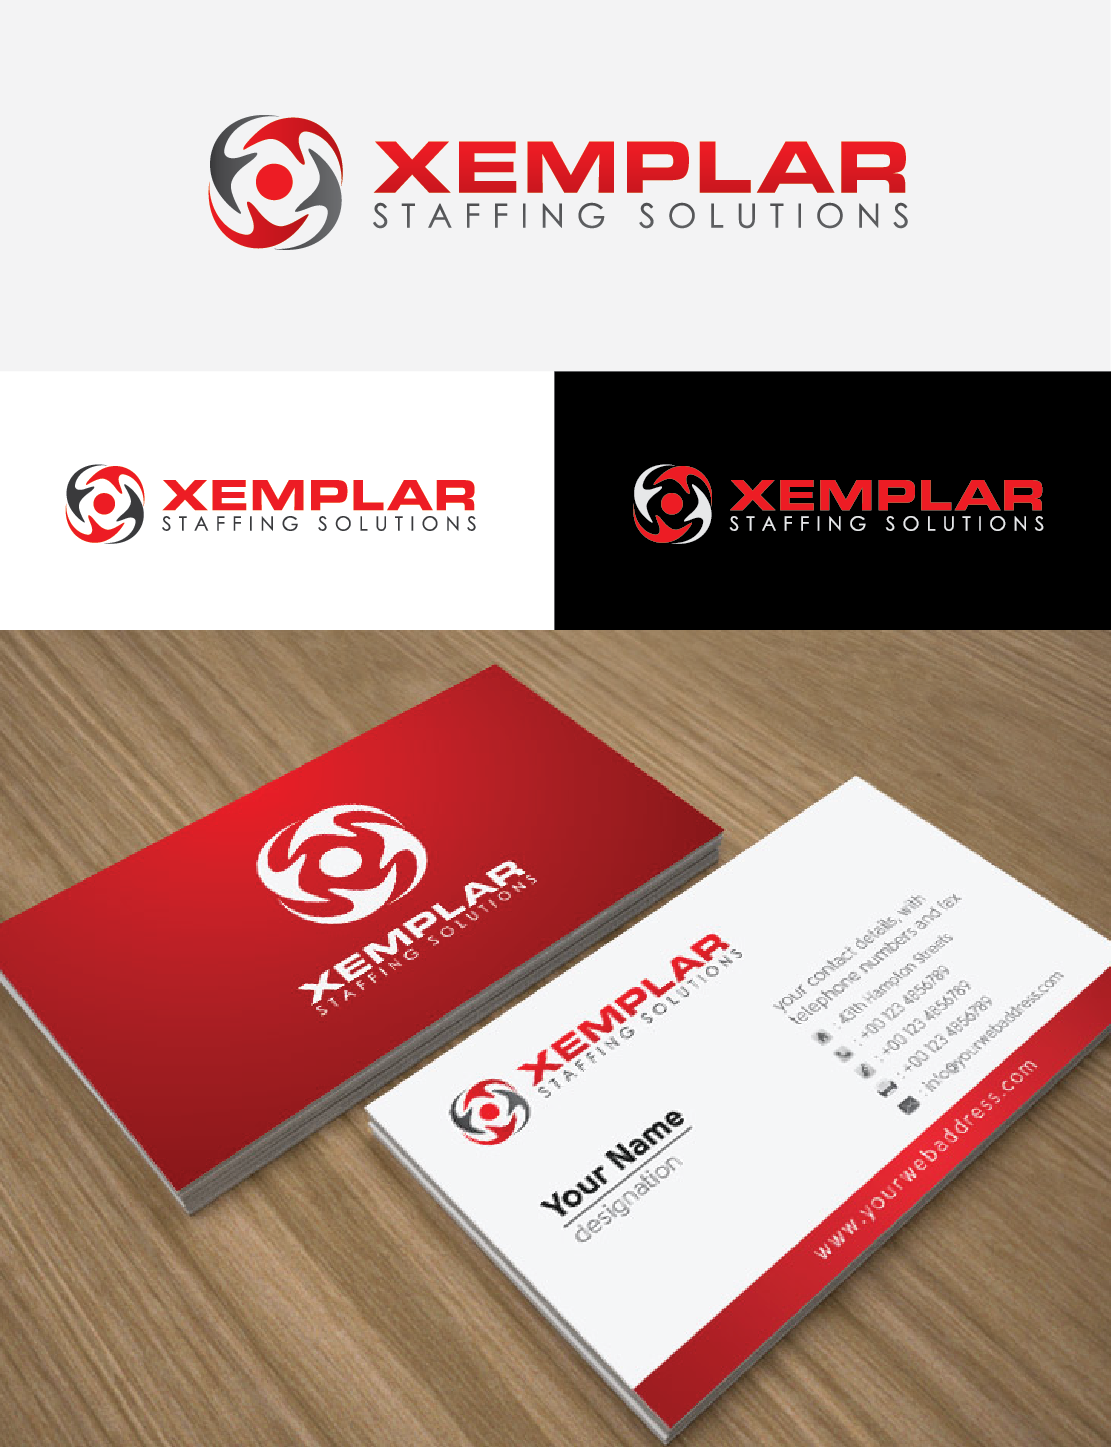 Create a winning logo for XEMPLAR, a new, ambitious industrial staffing company